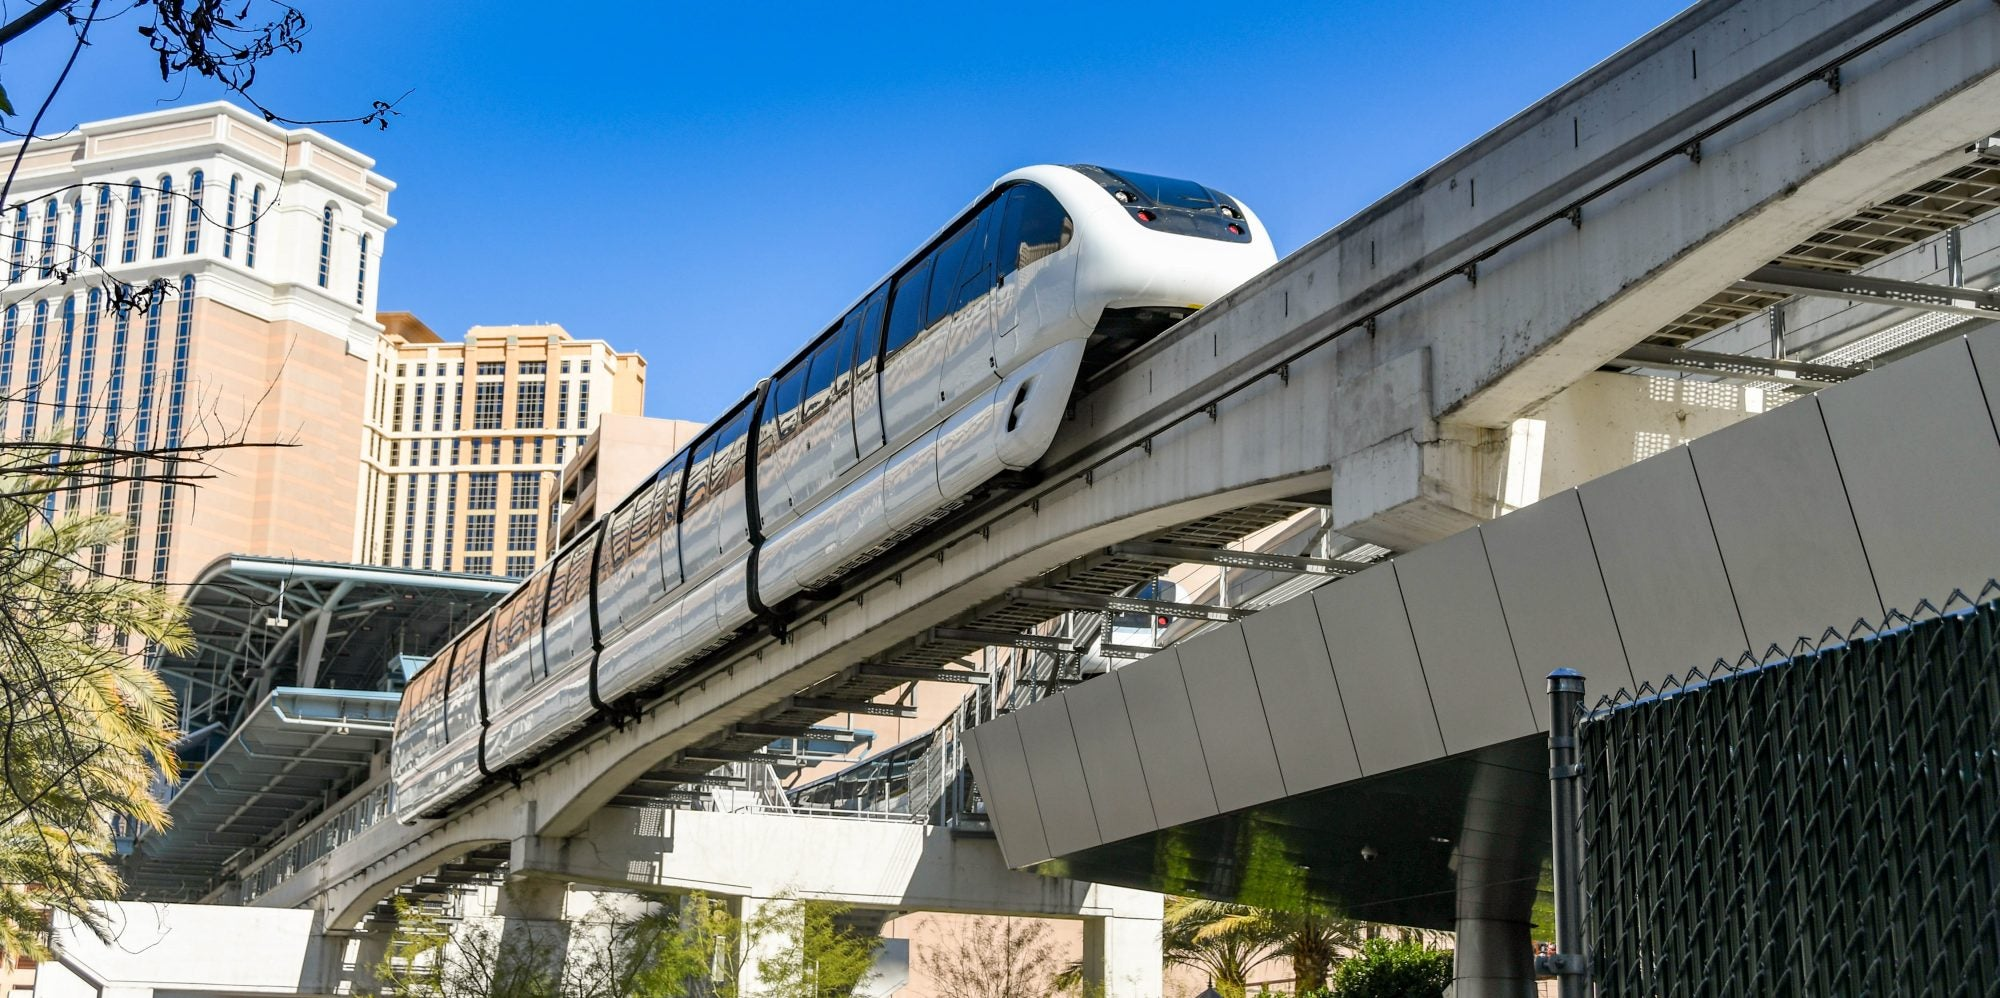 Monorail in las vegas